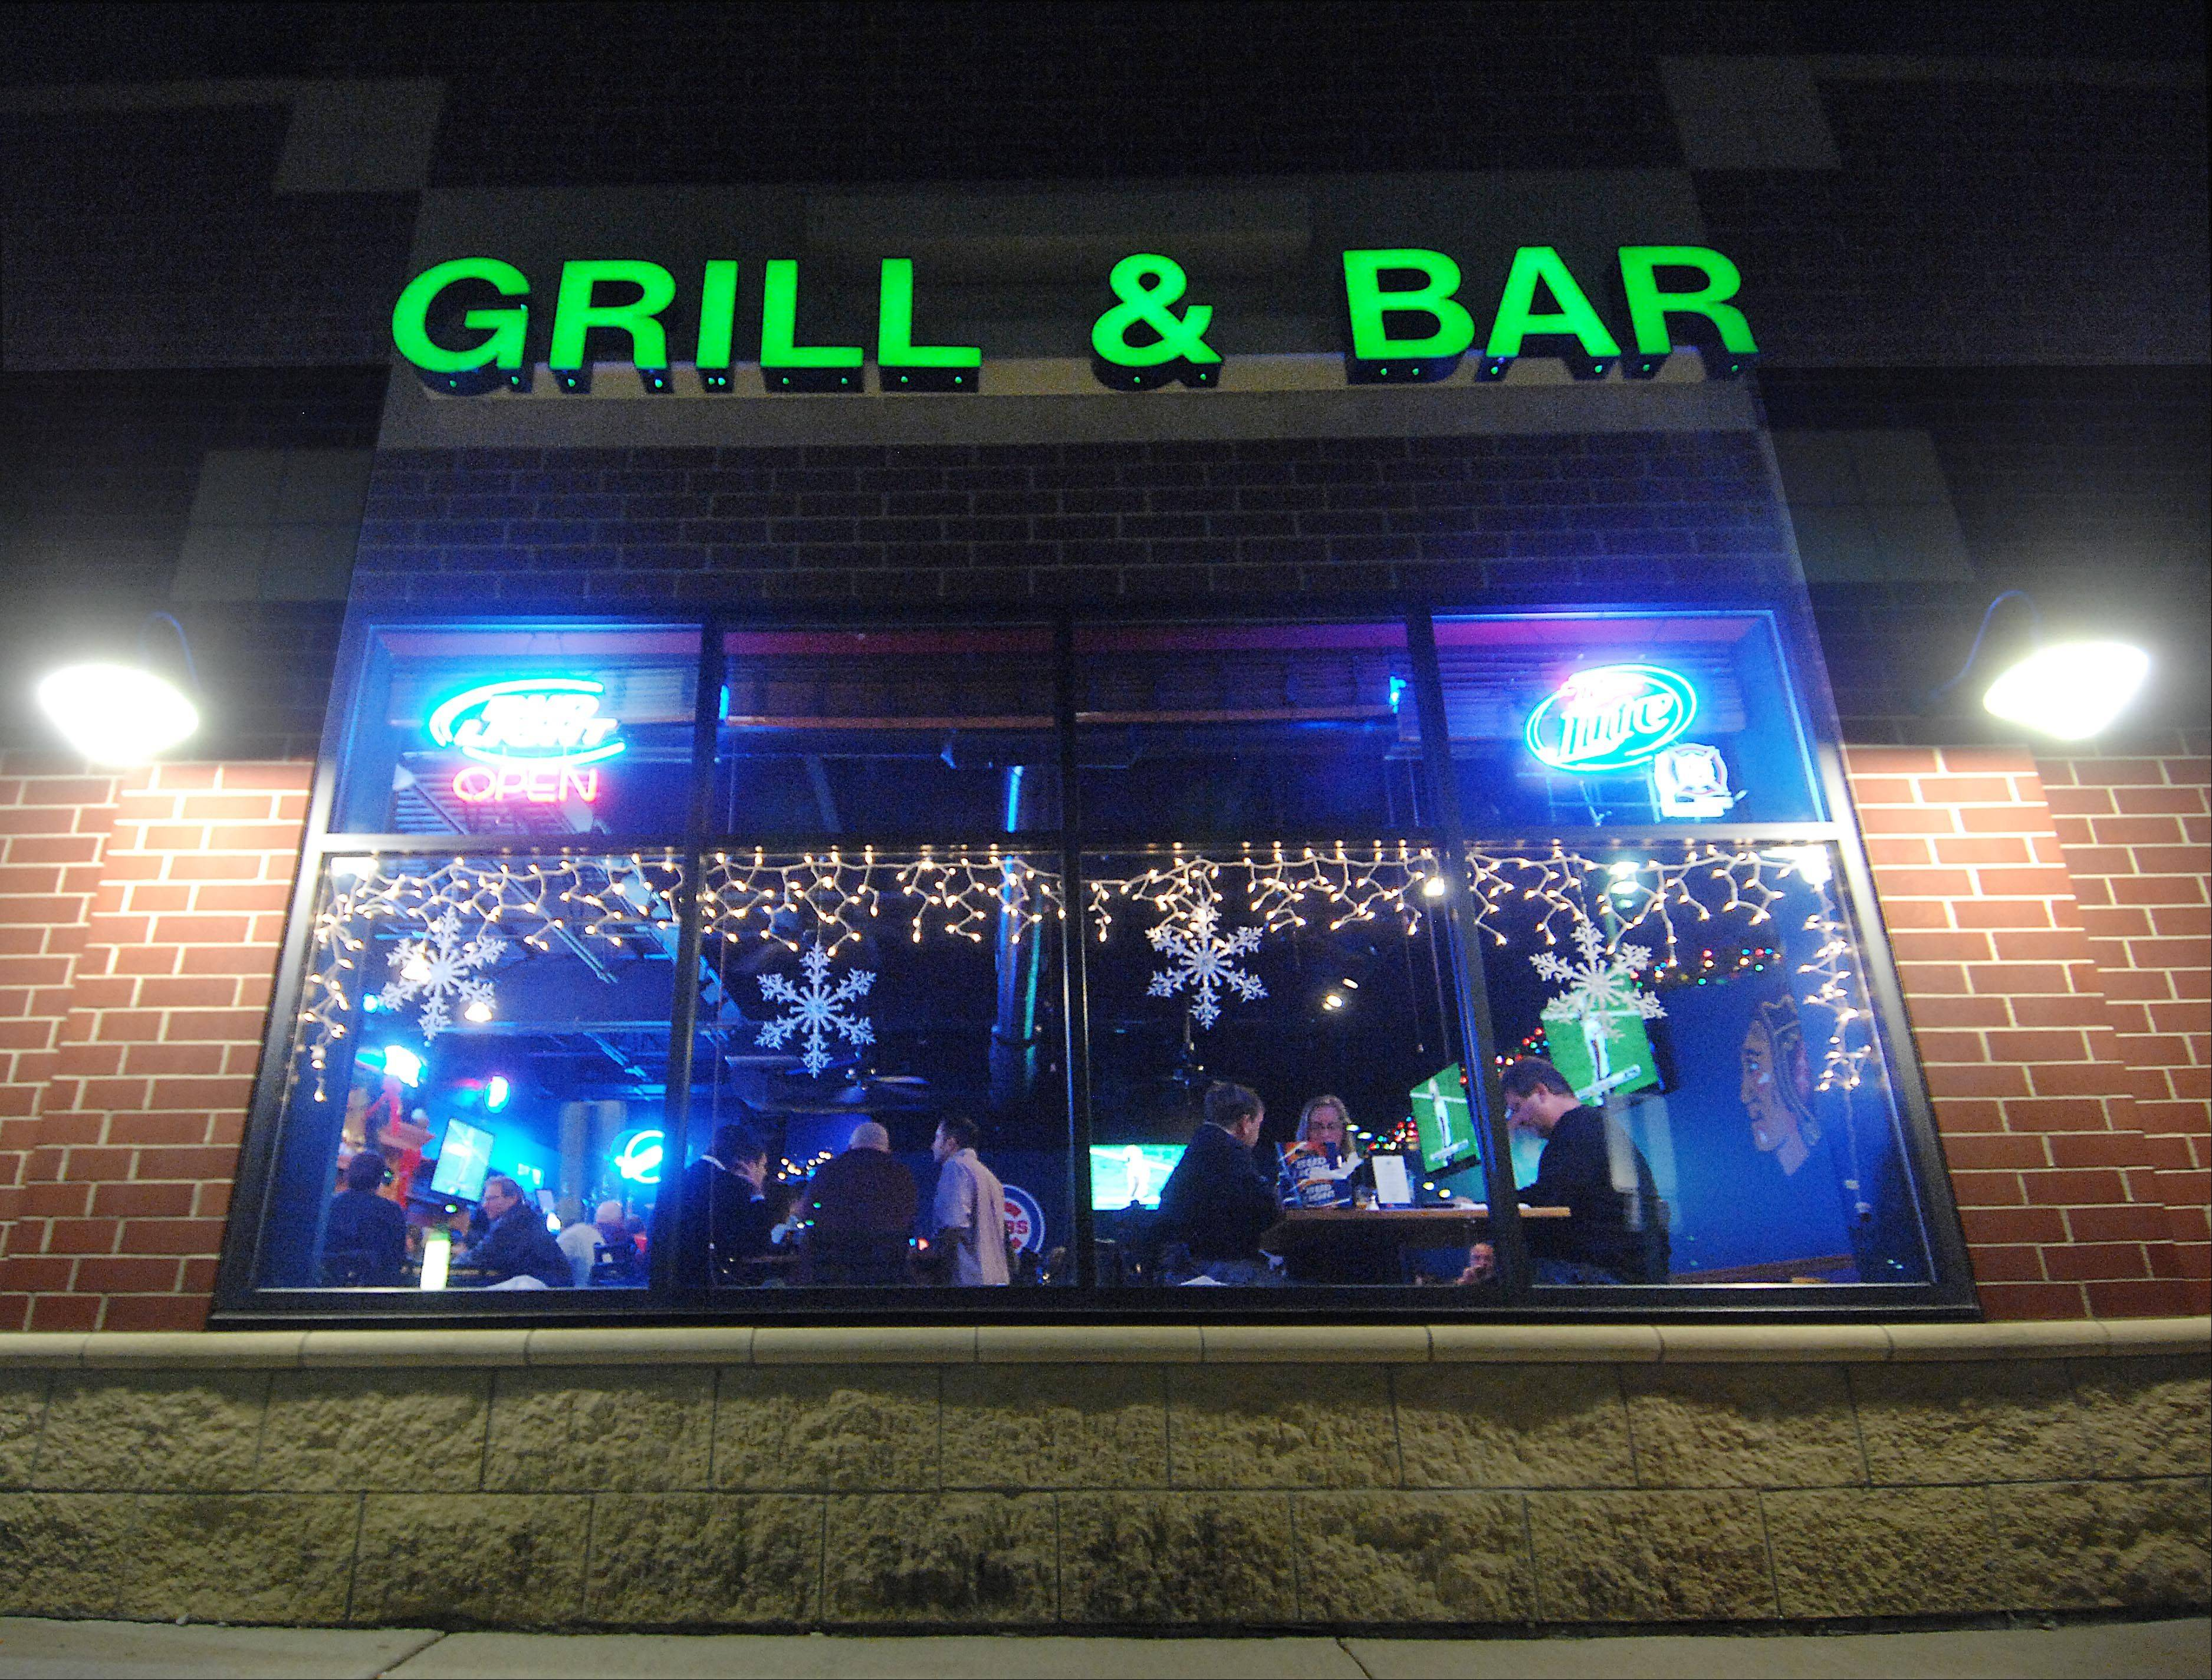 The Chubby Bullfrog in West Dundee is a place to catch a game and enjoy a drink or meal.